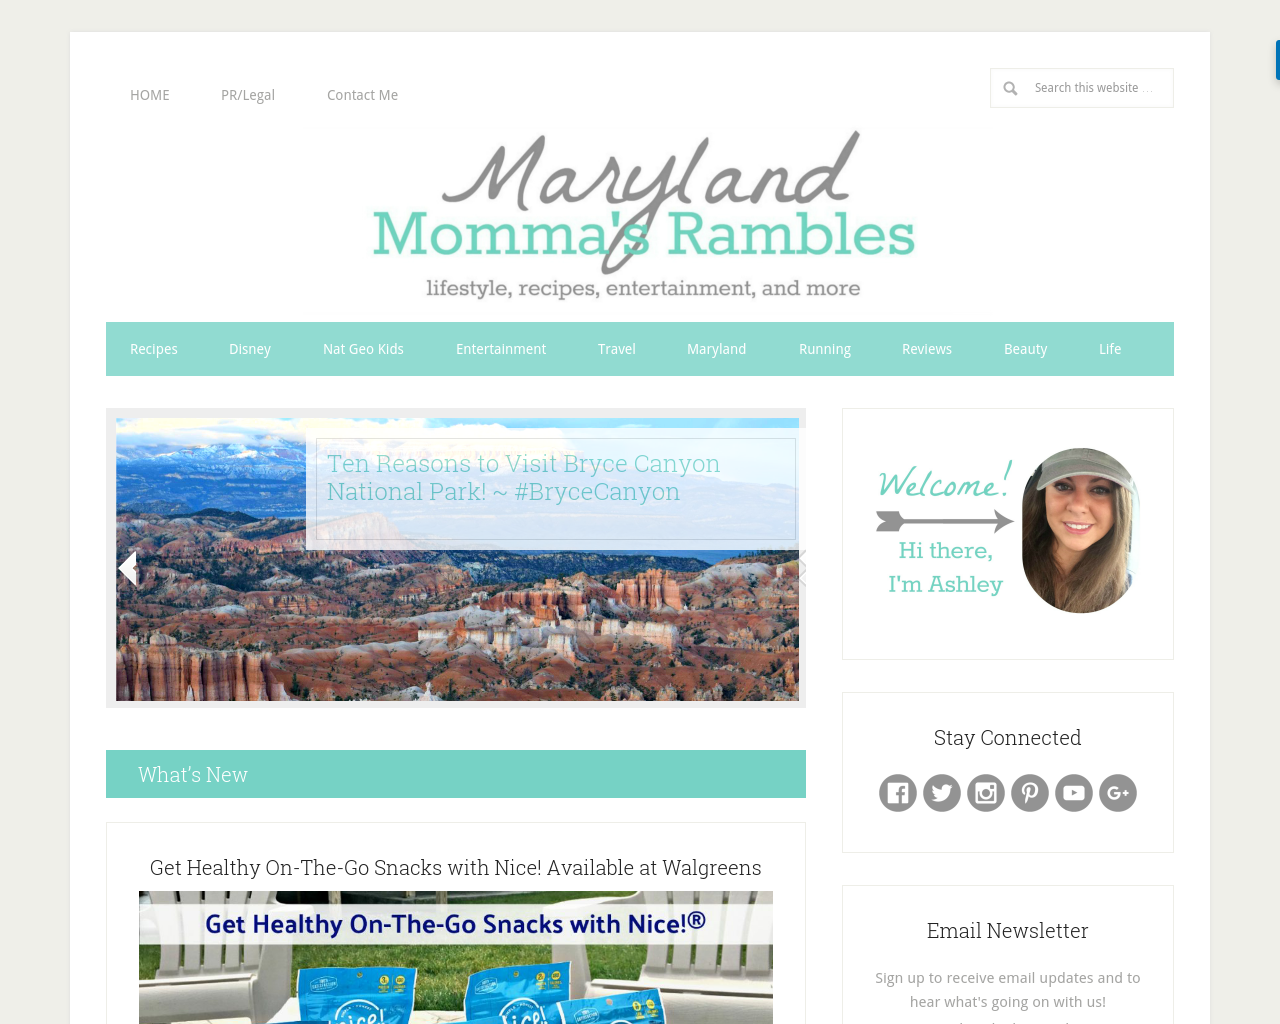 Maryland-Momma's-Rambles-&-Reviews-Advertising-Reviews-Pricing